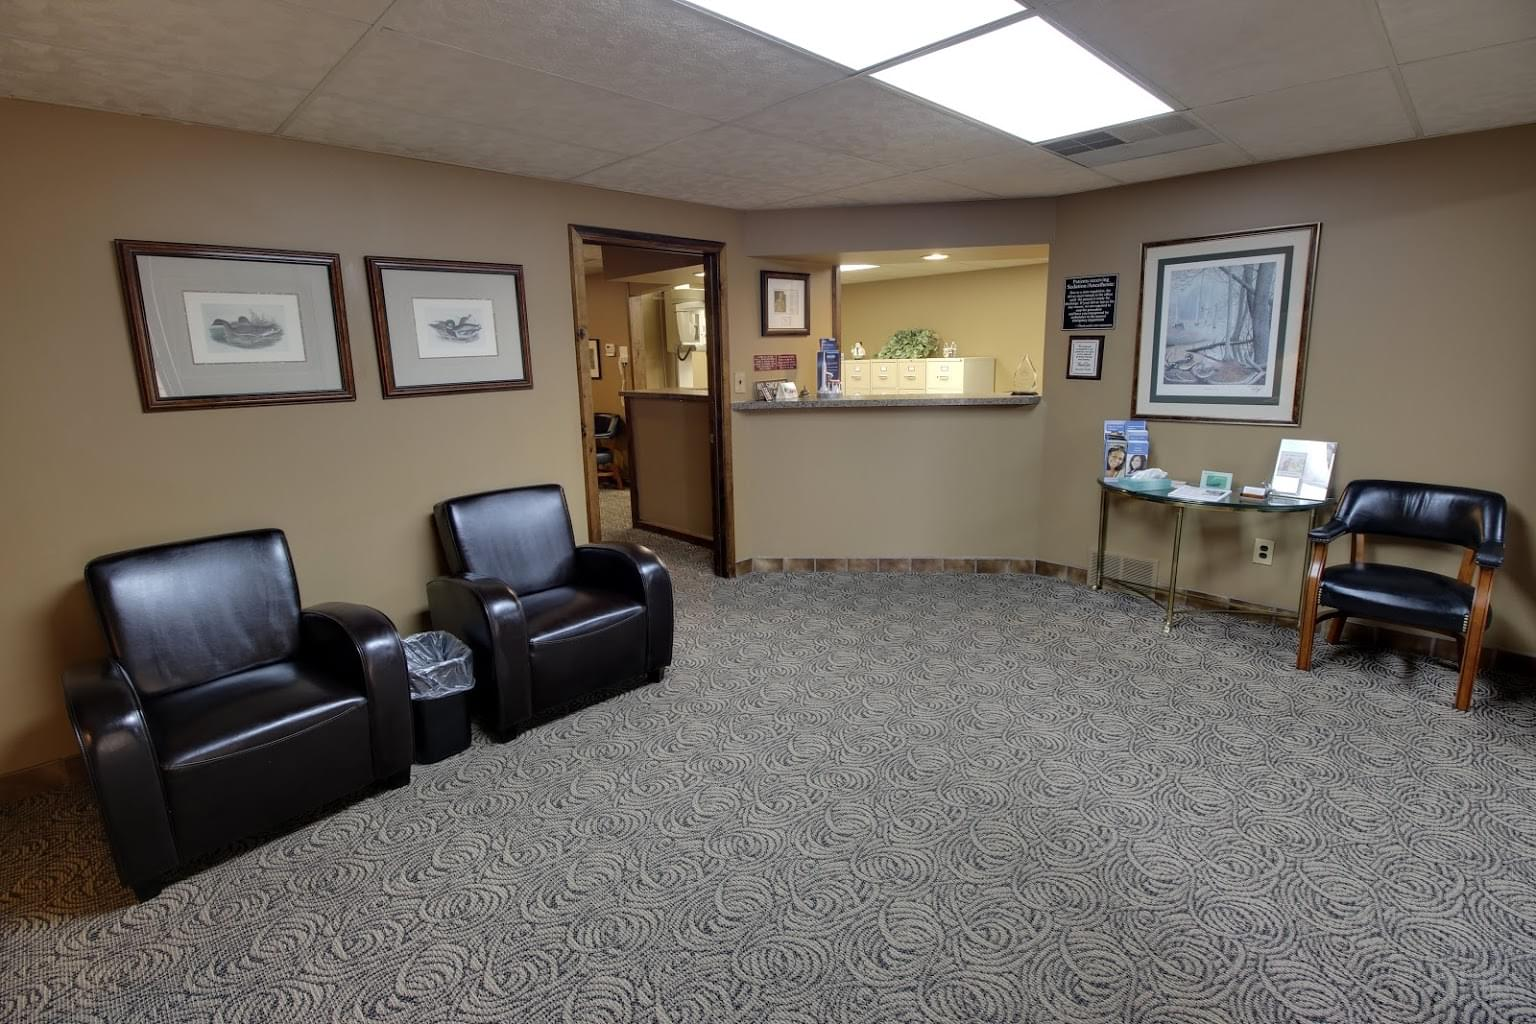 Sedation Dentistry Center of Michigan in Roseville, MI